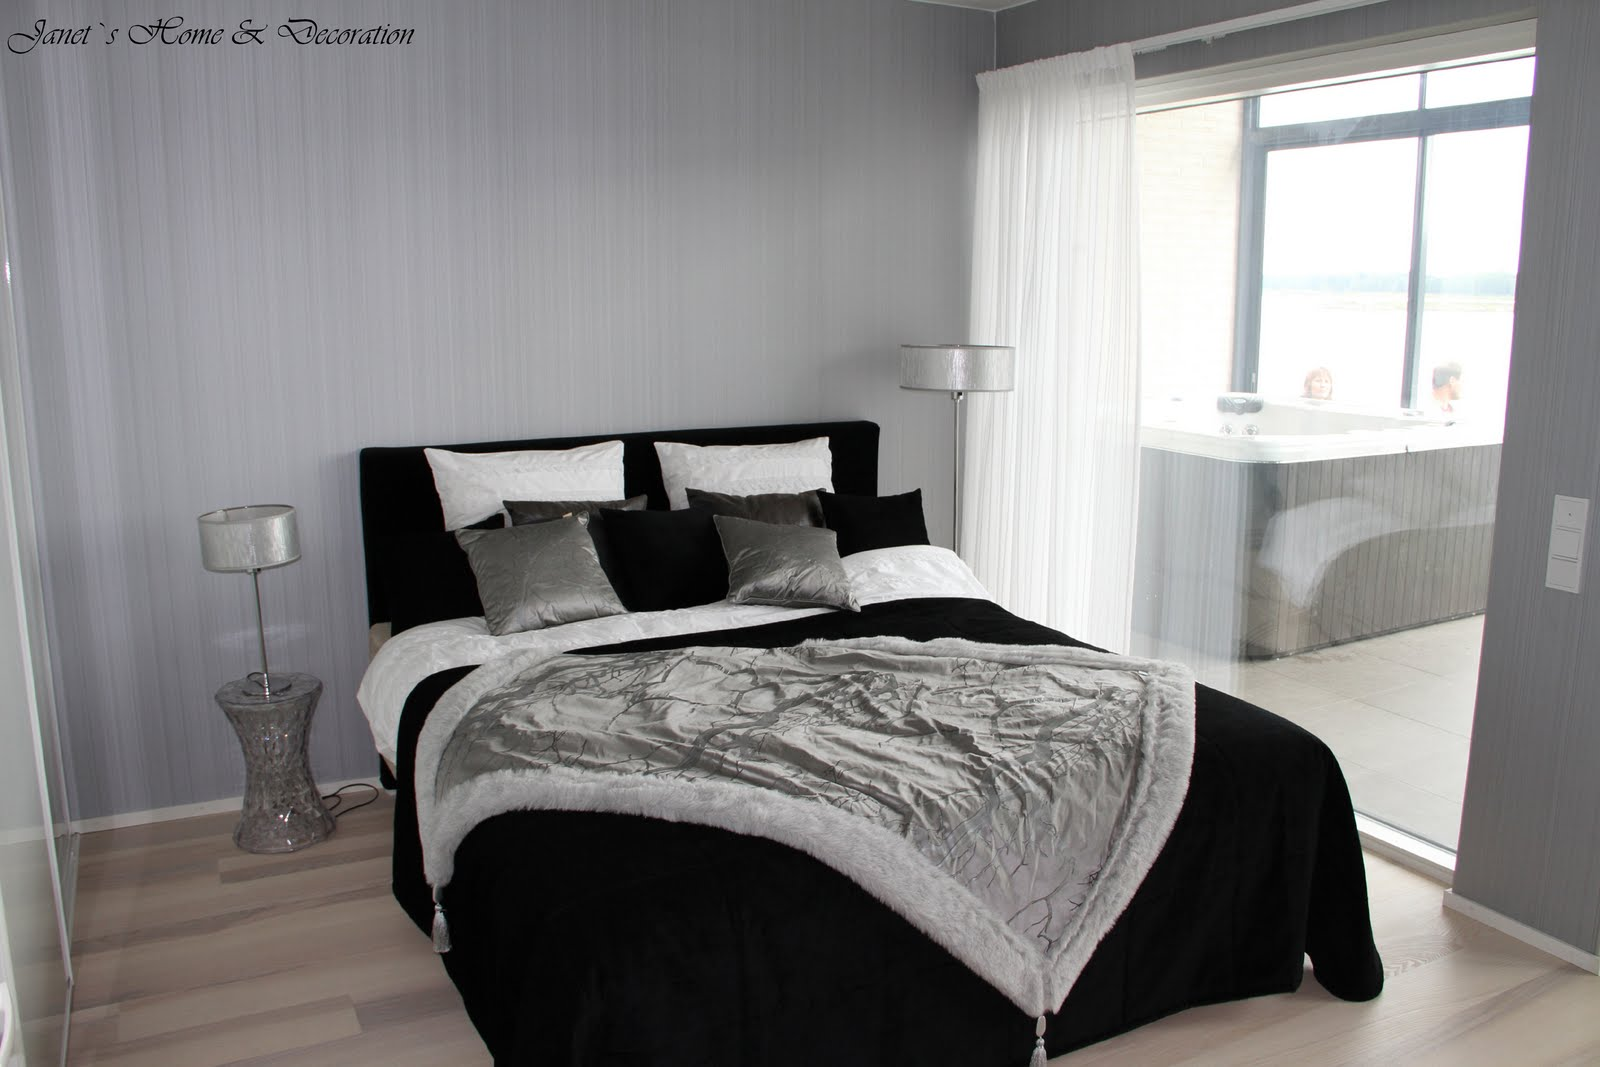 Janet's Home & Decoration: BOSTADSMÄSSANS MASTER BEDROOMS